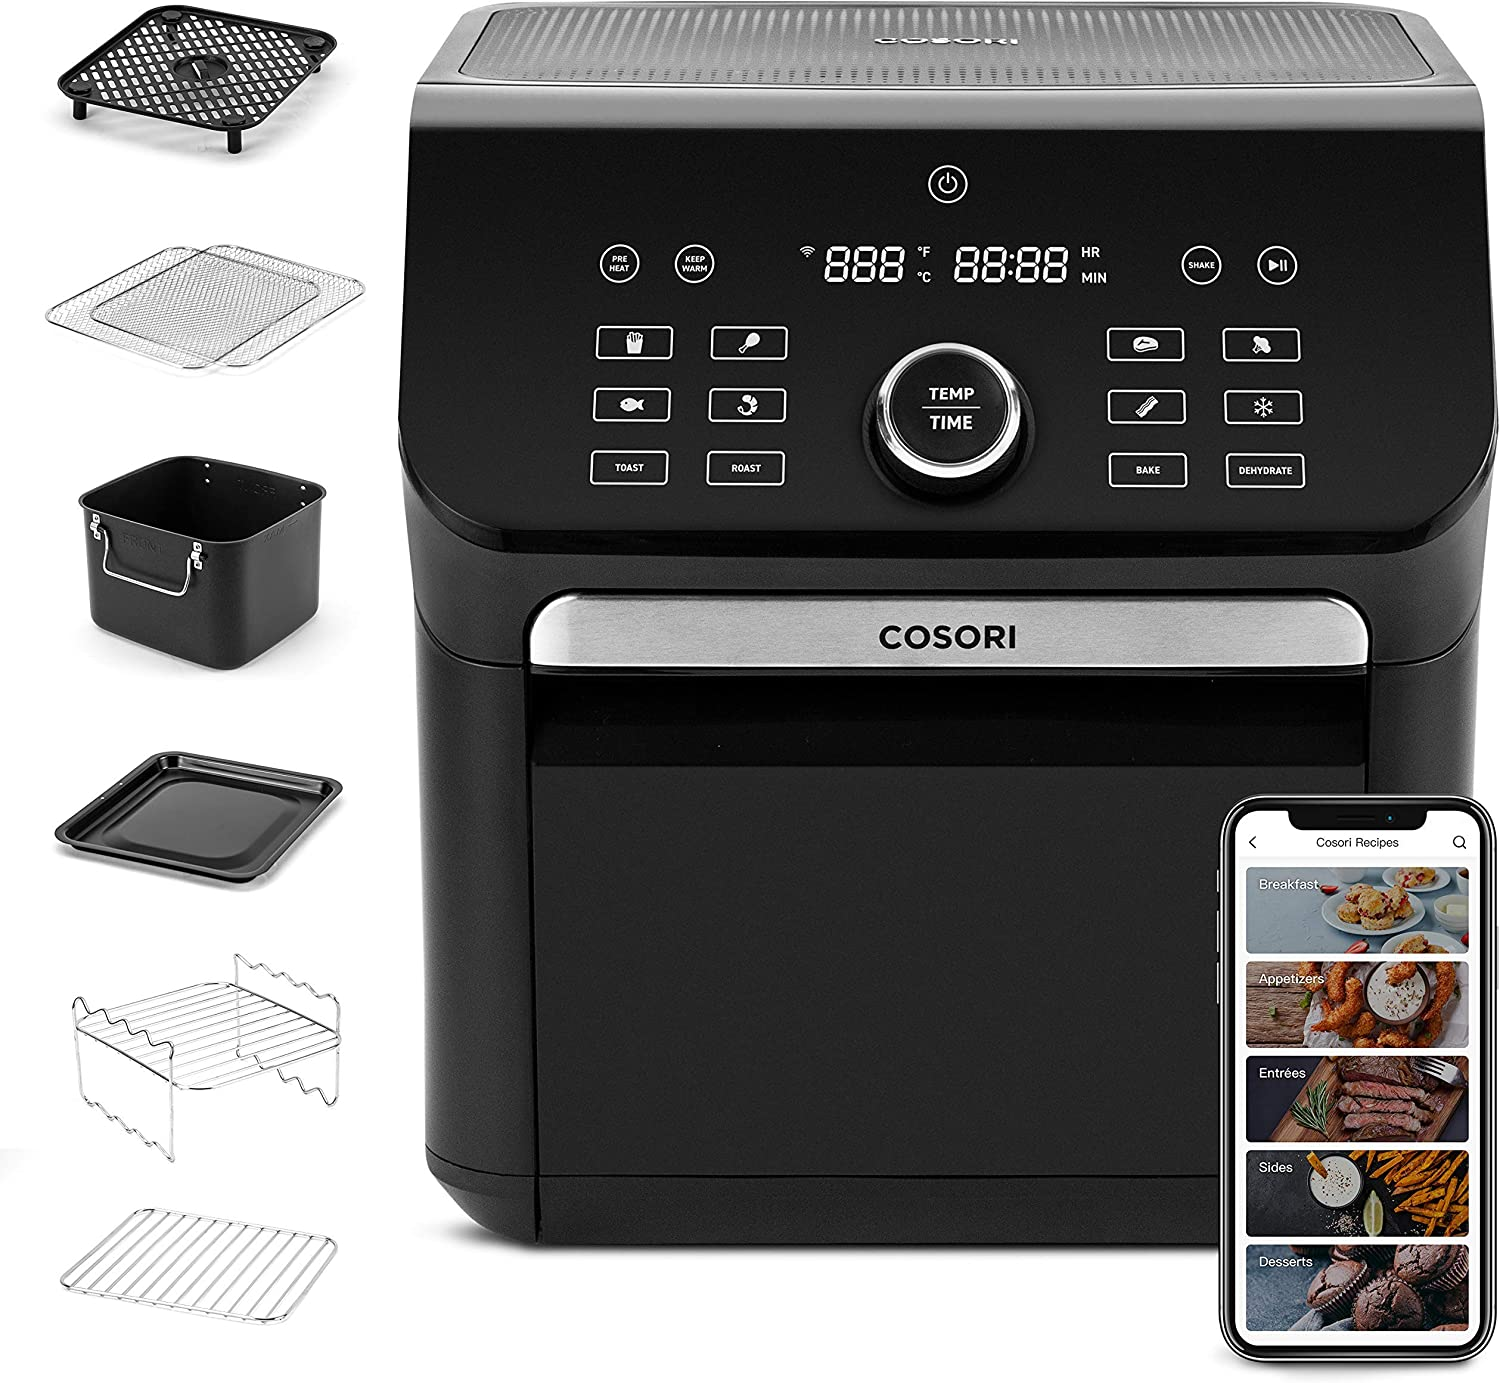 COSORI 14-in-1 Smart Large Air Fryer Oven XL 7QT with 6 Accessories, Wi-Fi App & Alexa Control/Google home, 12 Presets & Shake Reminder, Keep Warm Preheat, Memory function, 1800W, Black (Renewed)